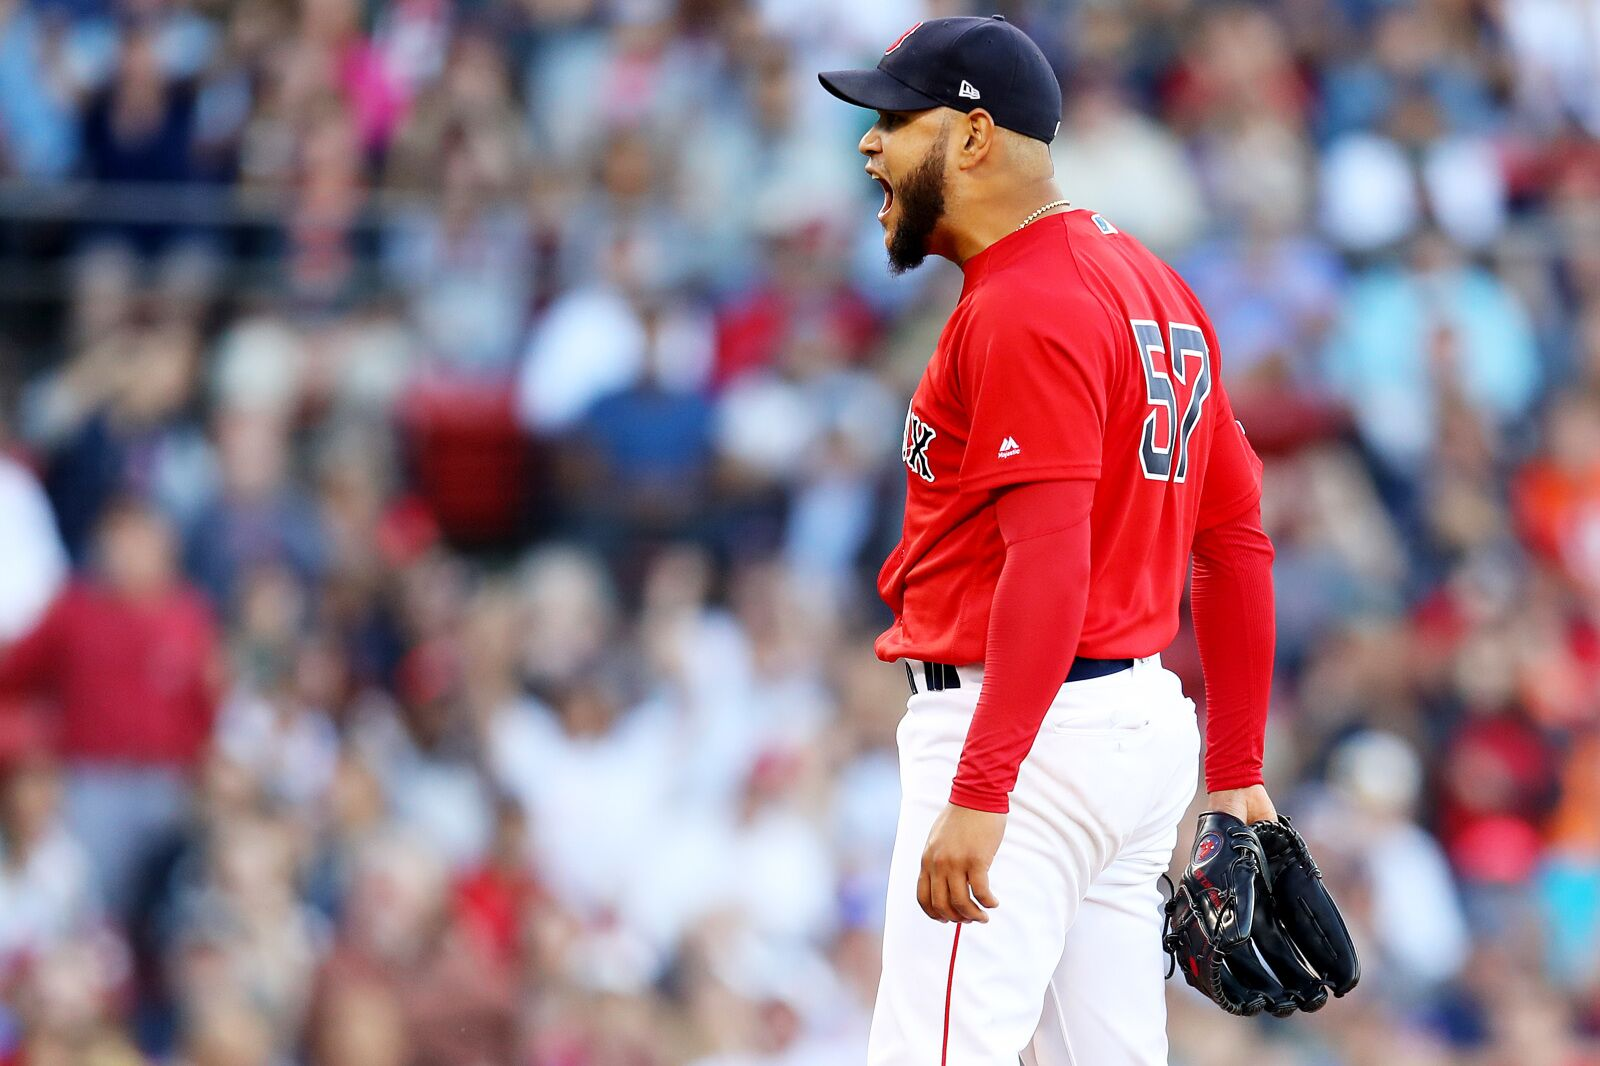 Red Sox: Eduardo Rodriguez is now one of the teams most integral players